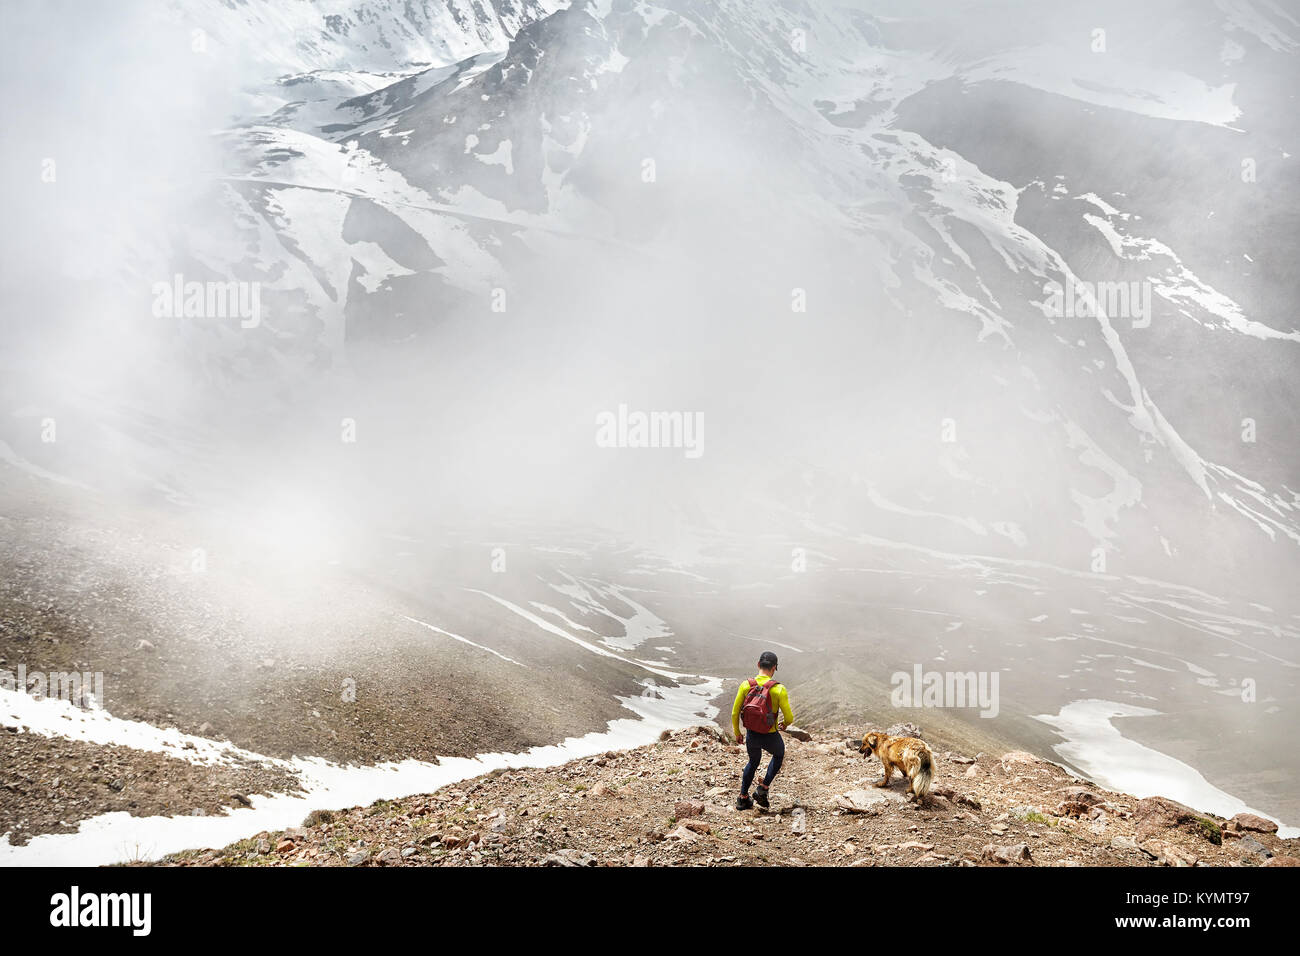 Hiker in green shirt with backpack and dog walking in the snowy mountains at foggy sky background - Stock Image